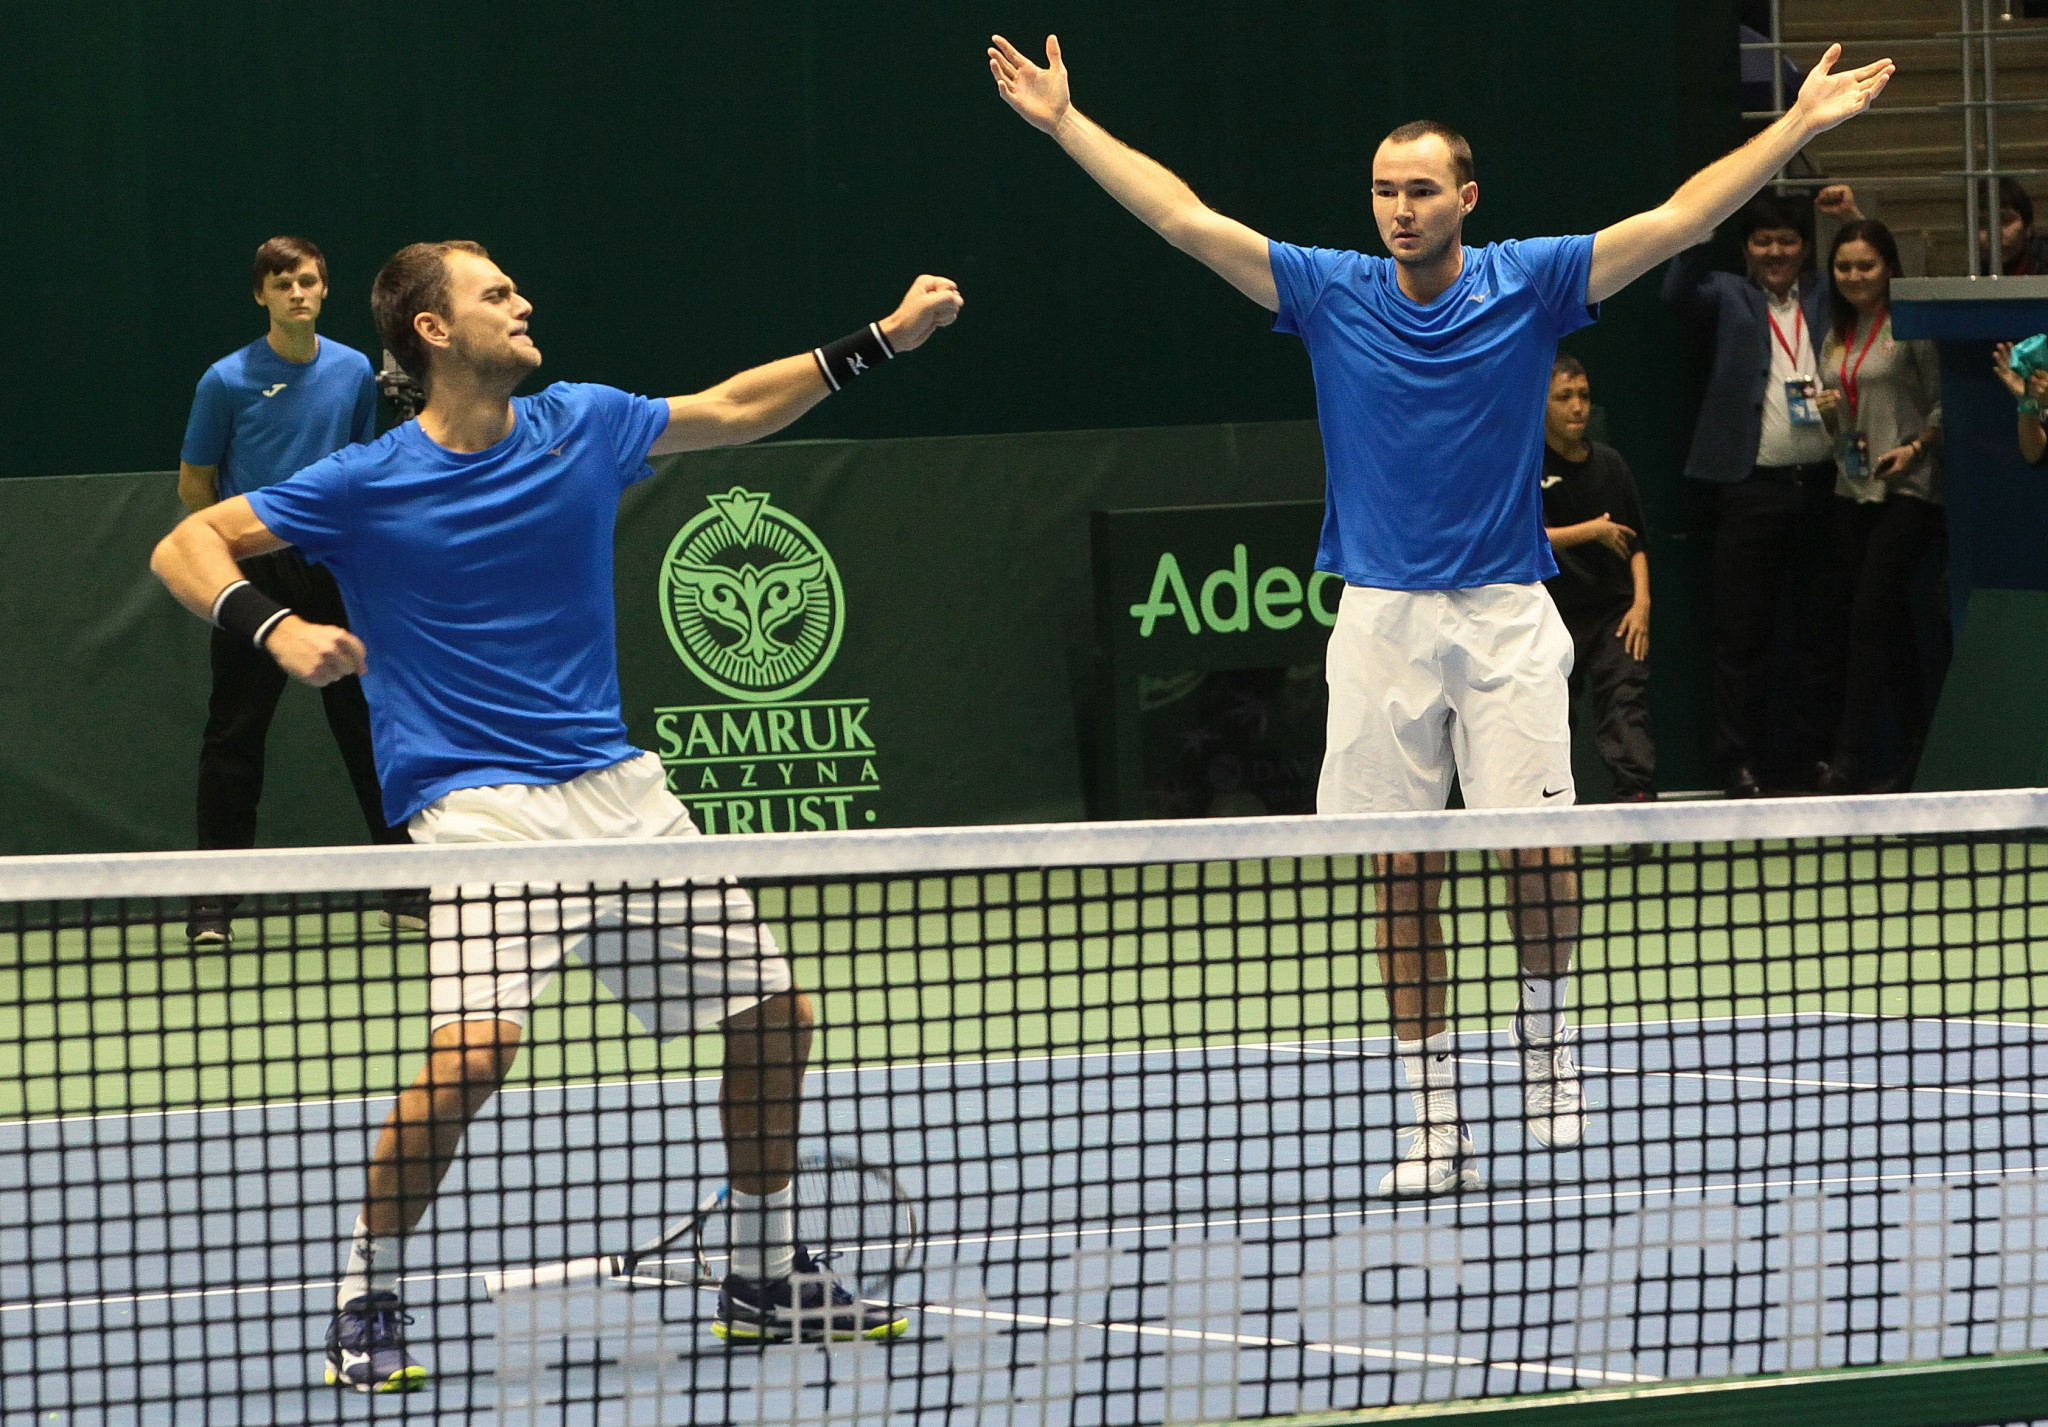 United States of America clinches over shorthanded Serbia to advance in Davis Cup